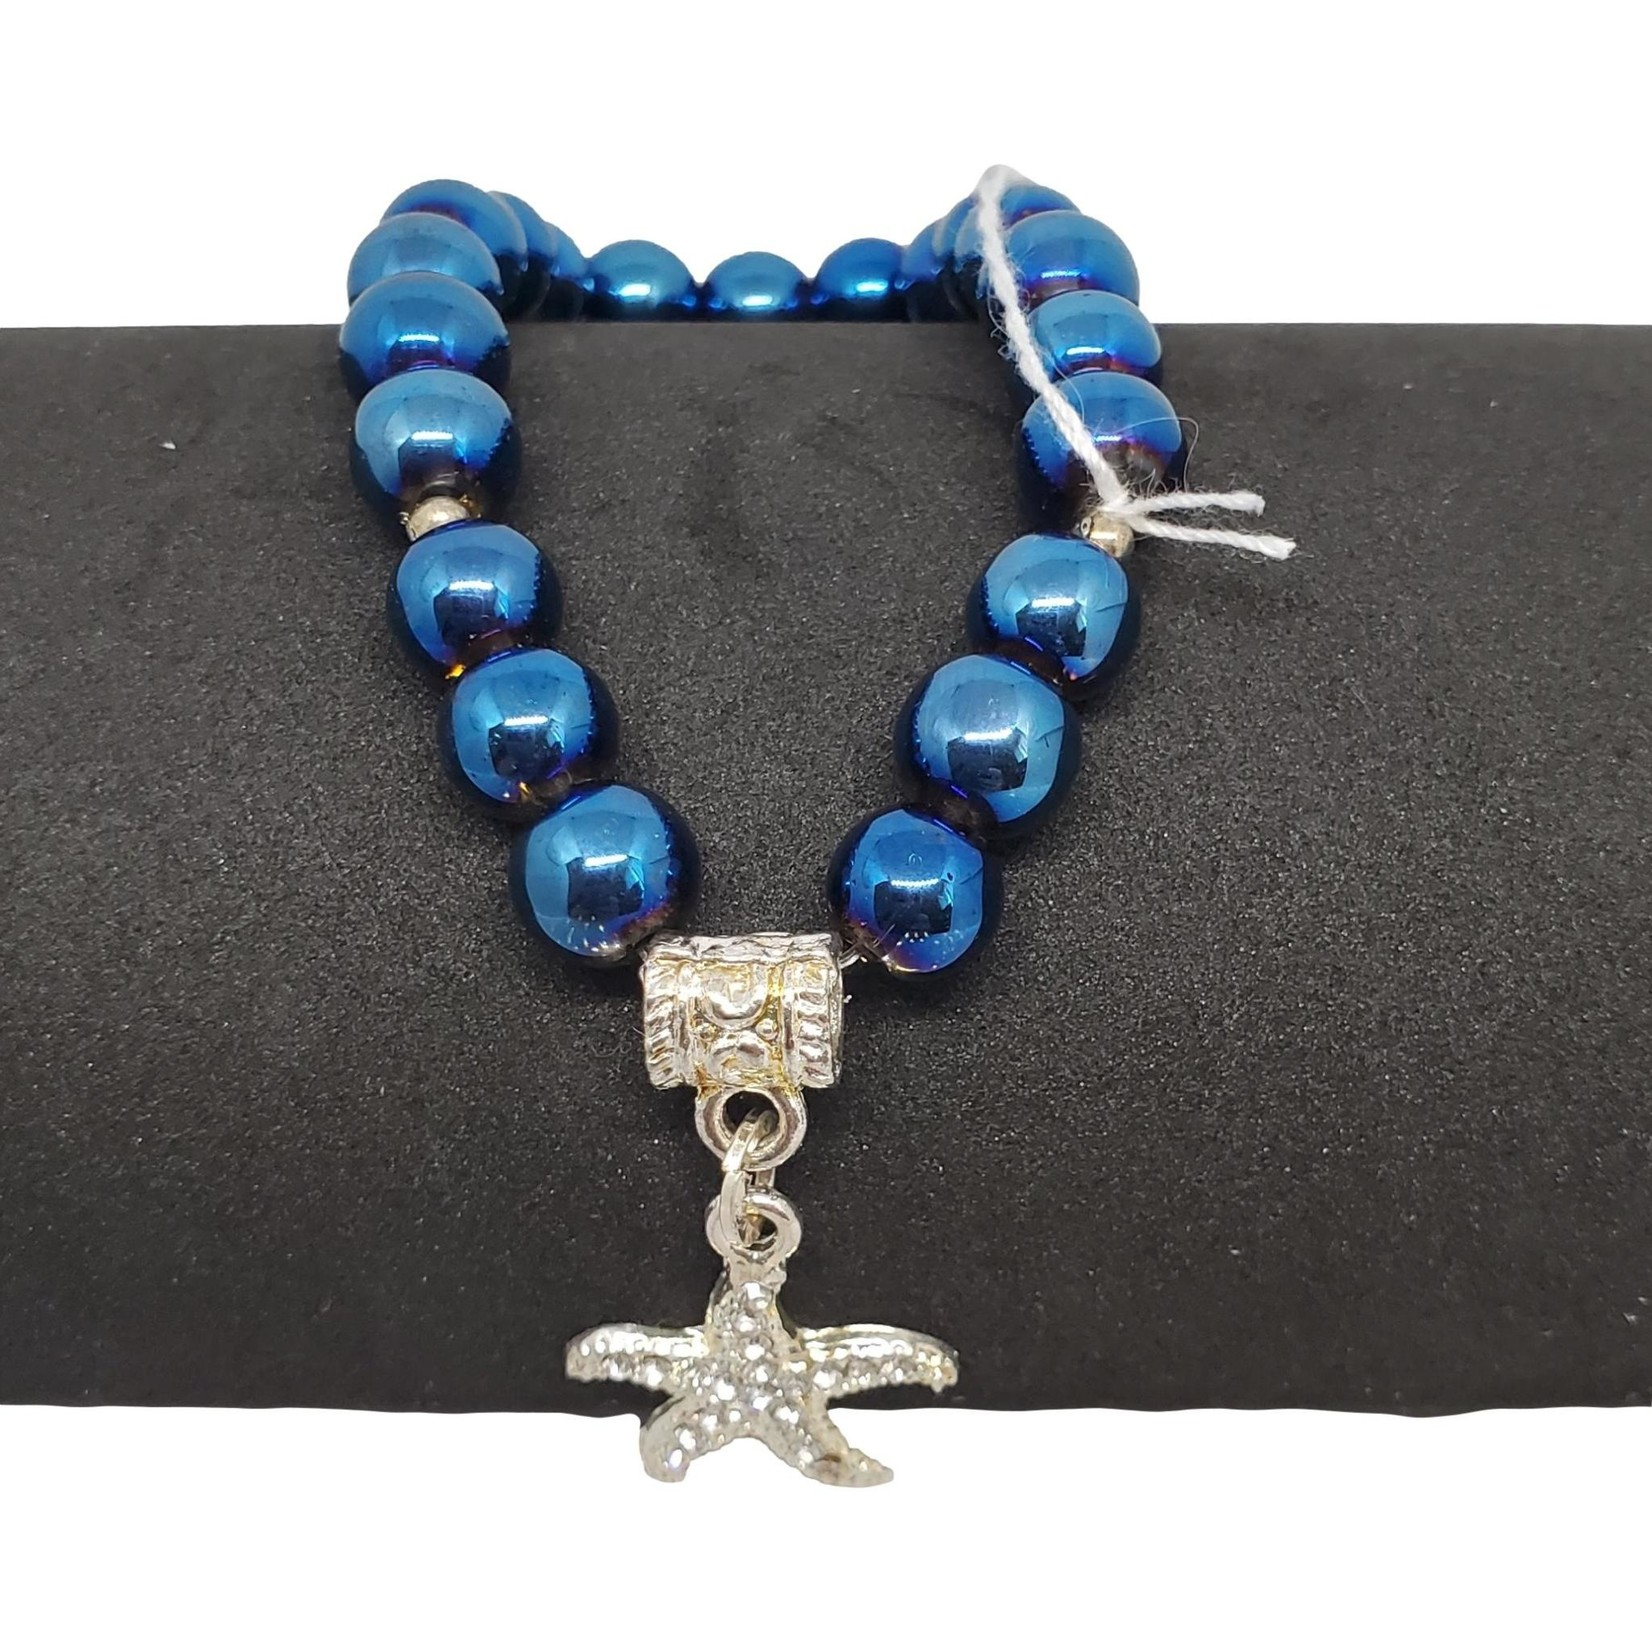 Jewellery by Deborah Young-Groves Blue Beads with Silver Starfish Bracelet